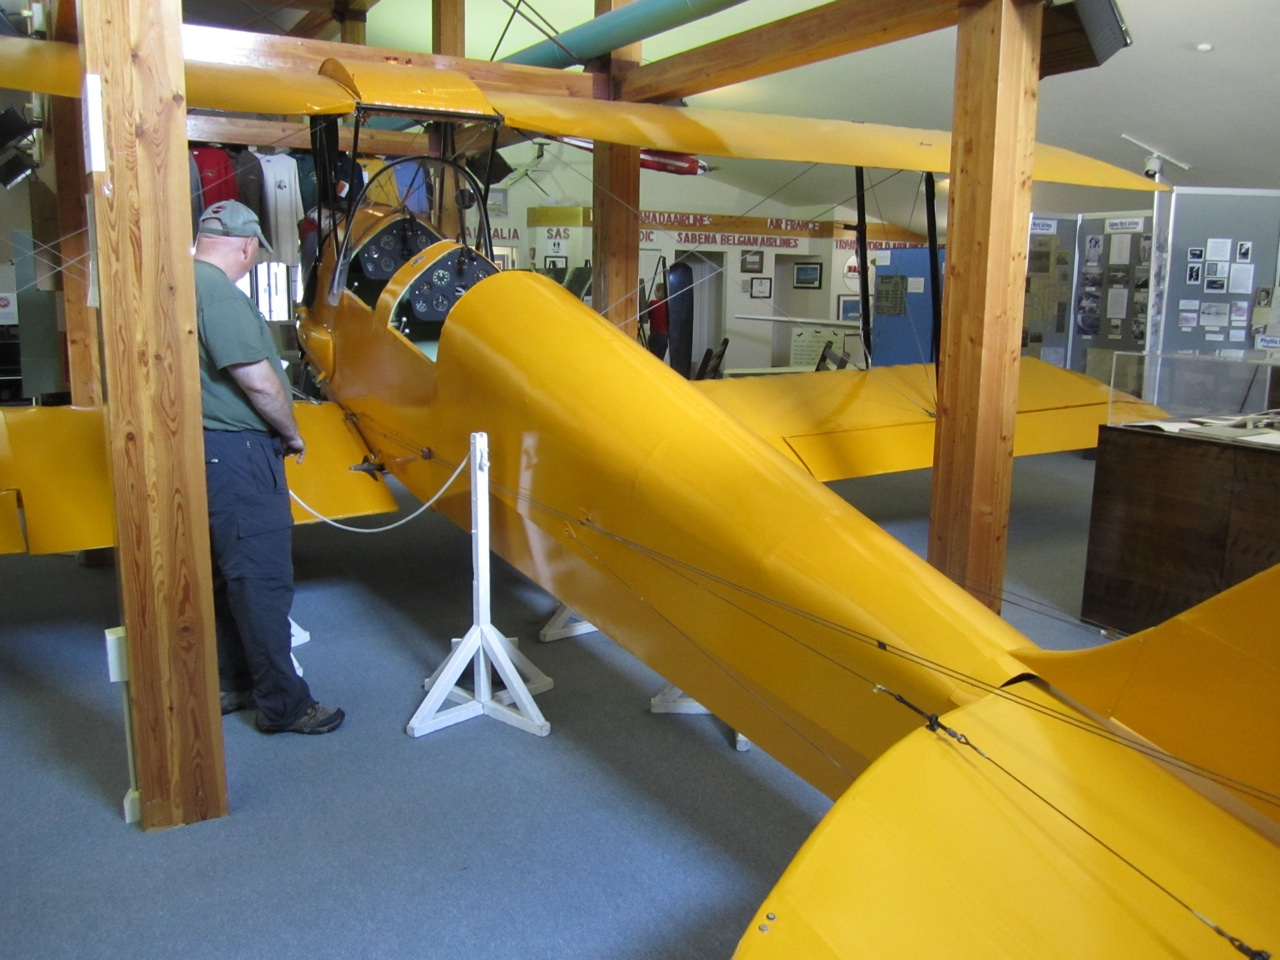 David Checking Out An Aircraft Inside The Museum